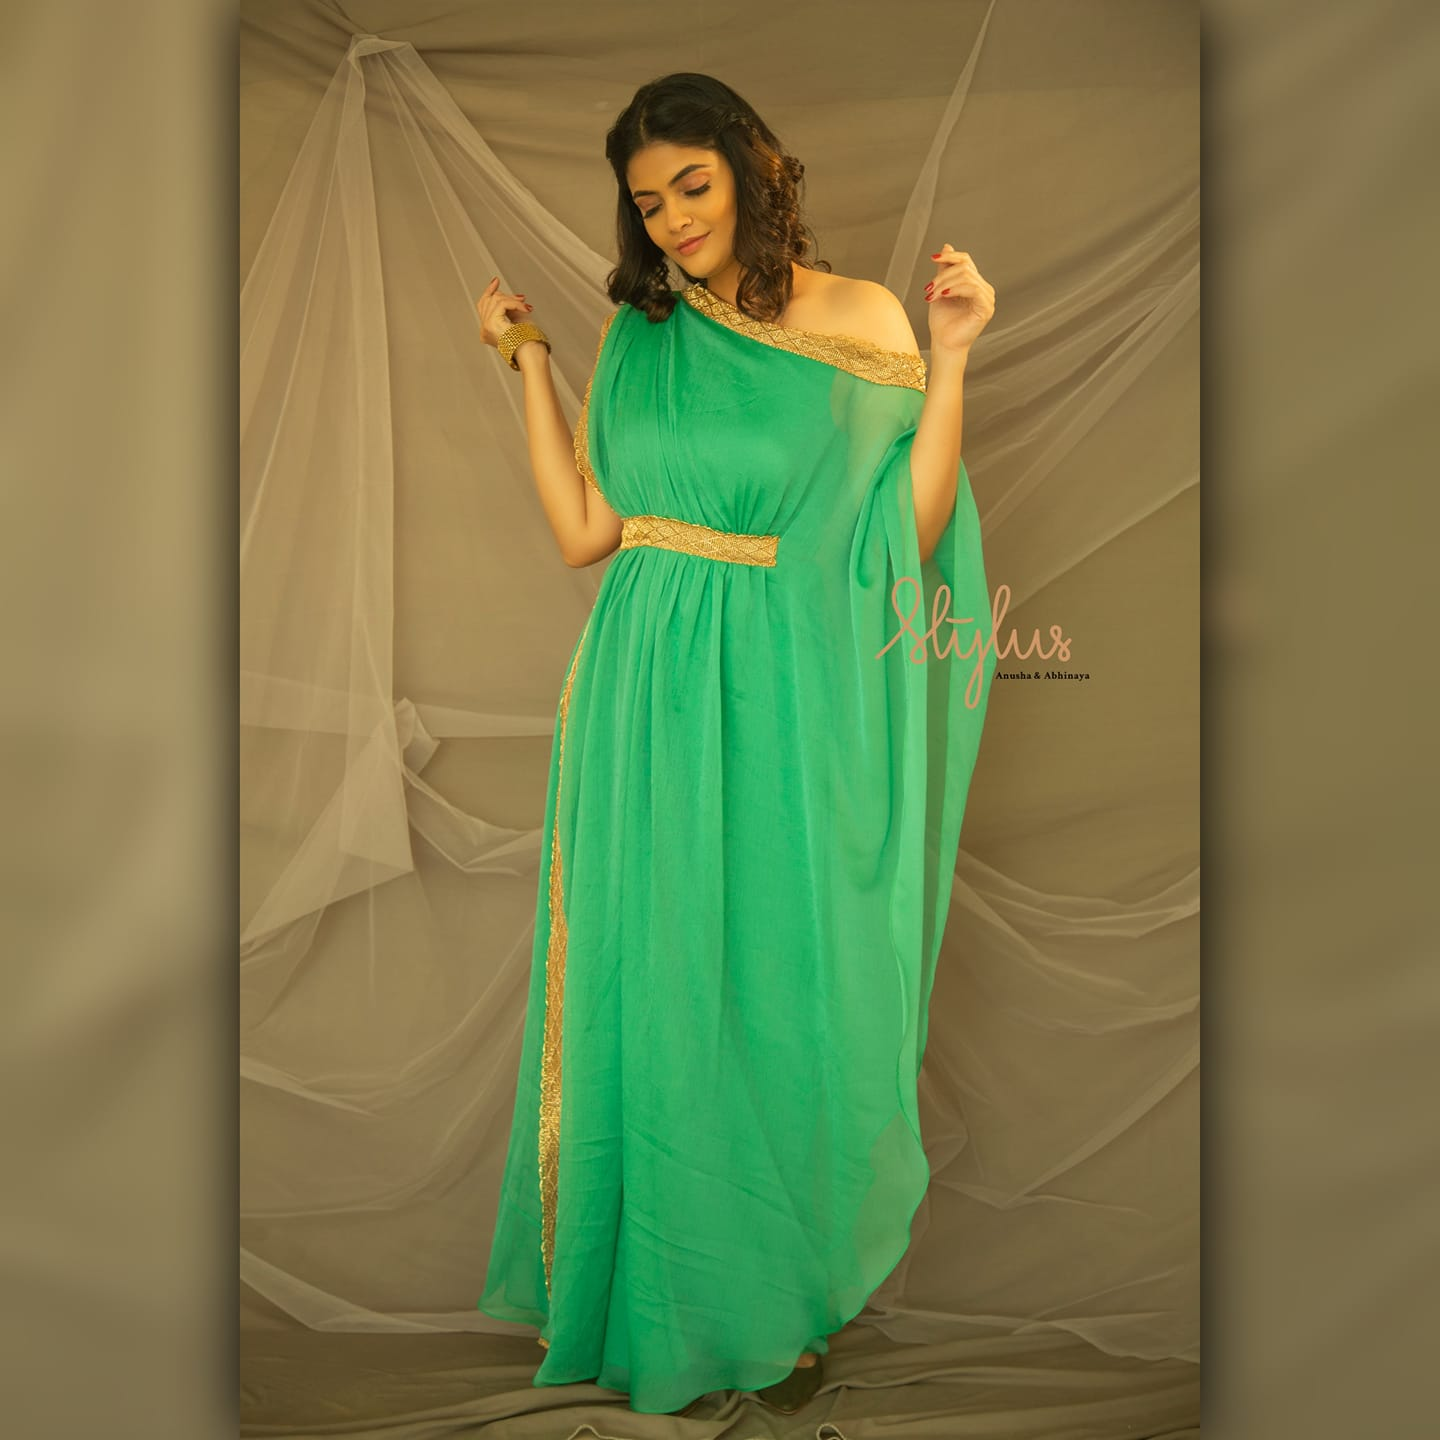 Style while you bedazzle with a smile! Green off shoulder drape frock. Twin with nature the Stylus way. 2021-03-05